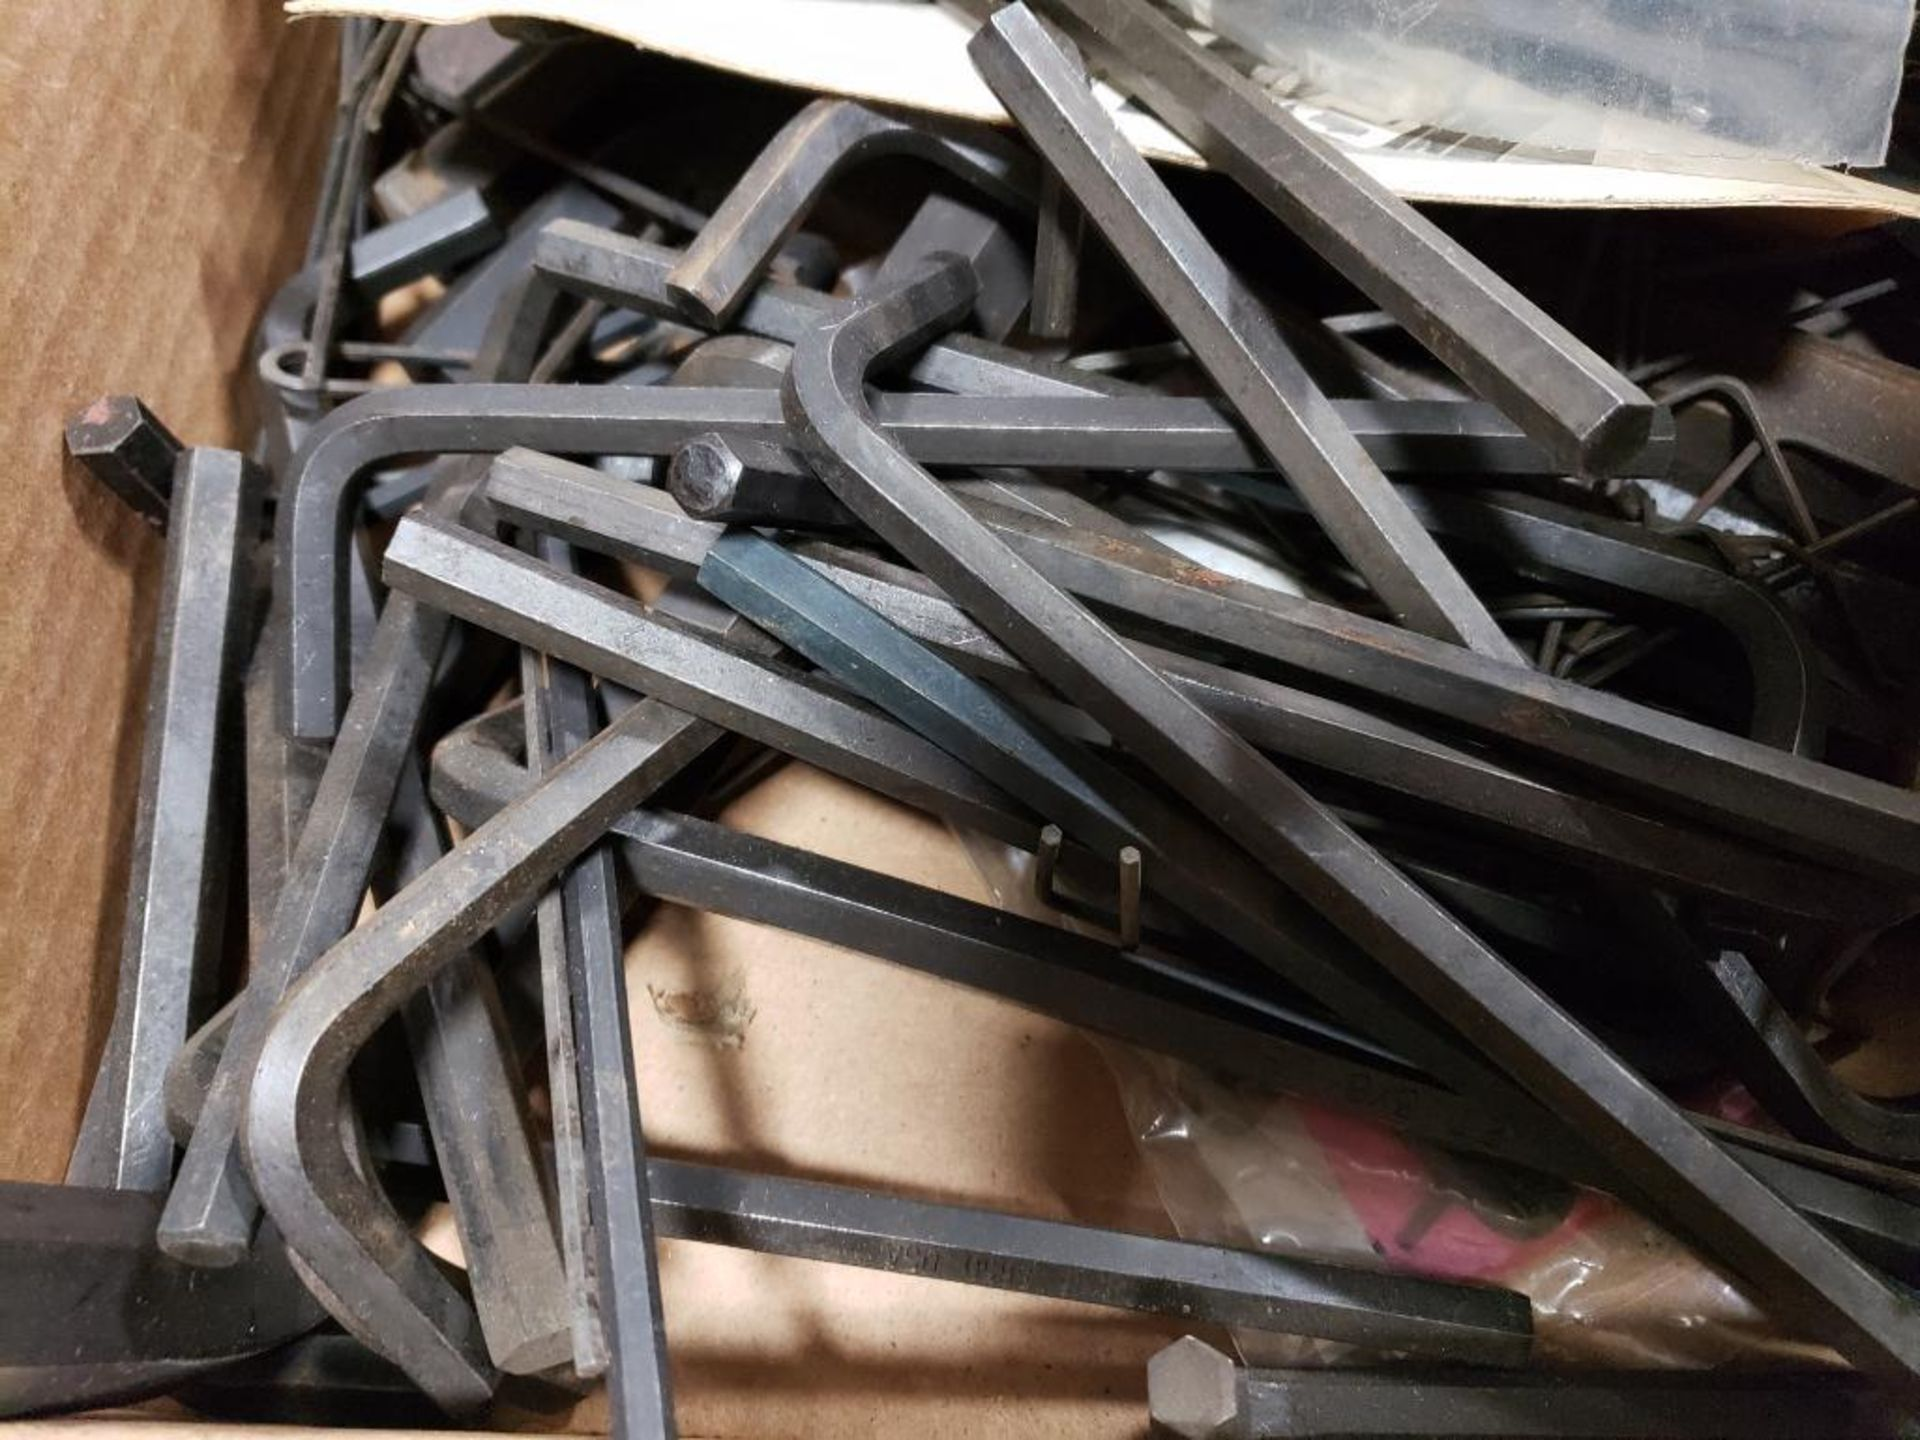 Large Qty of assorted allen wrenches. Holo-Krome and brands. - Image 2 of 4